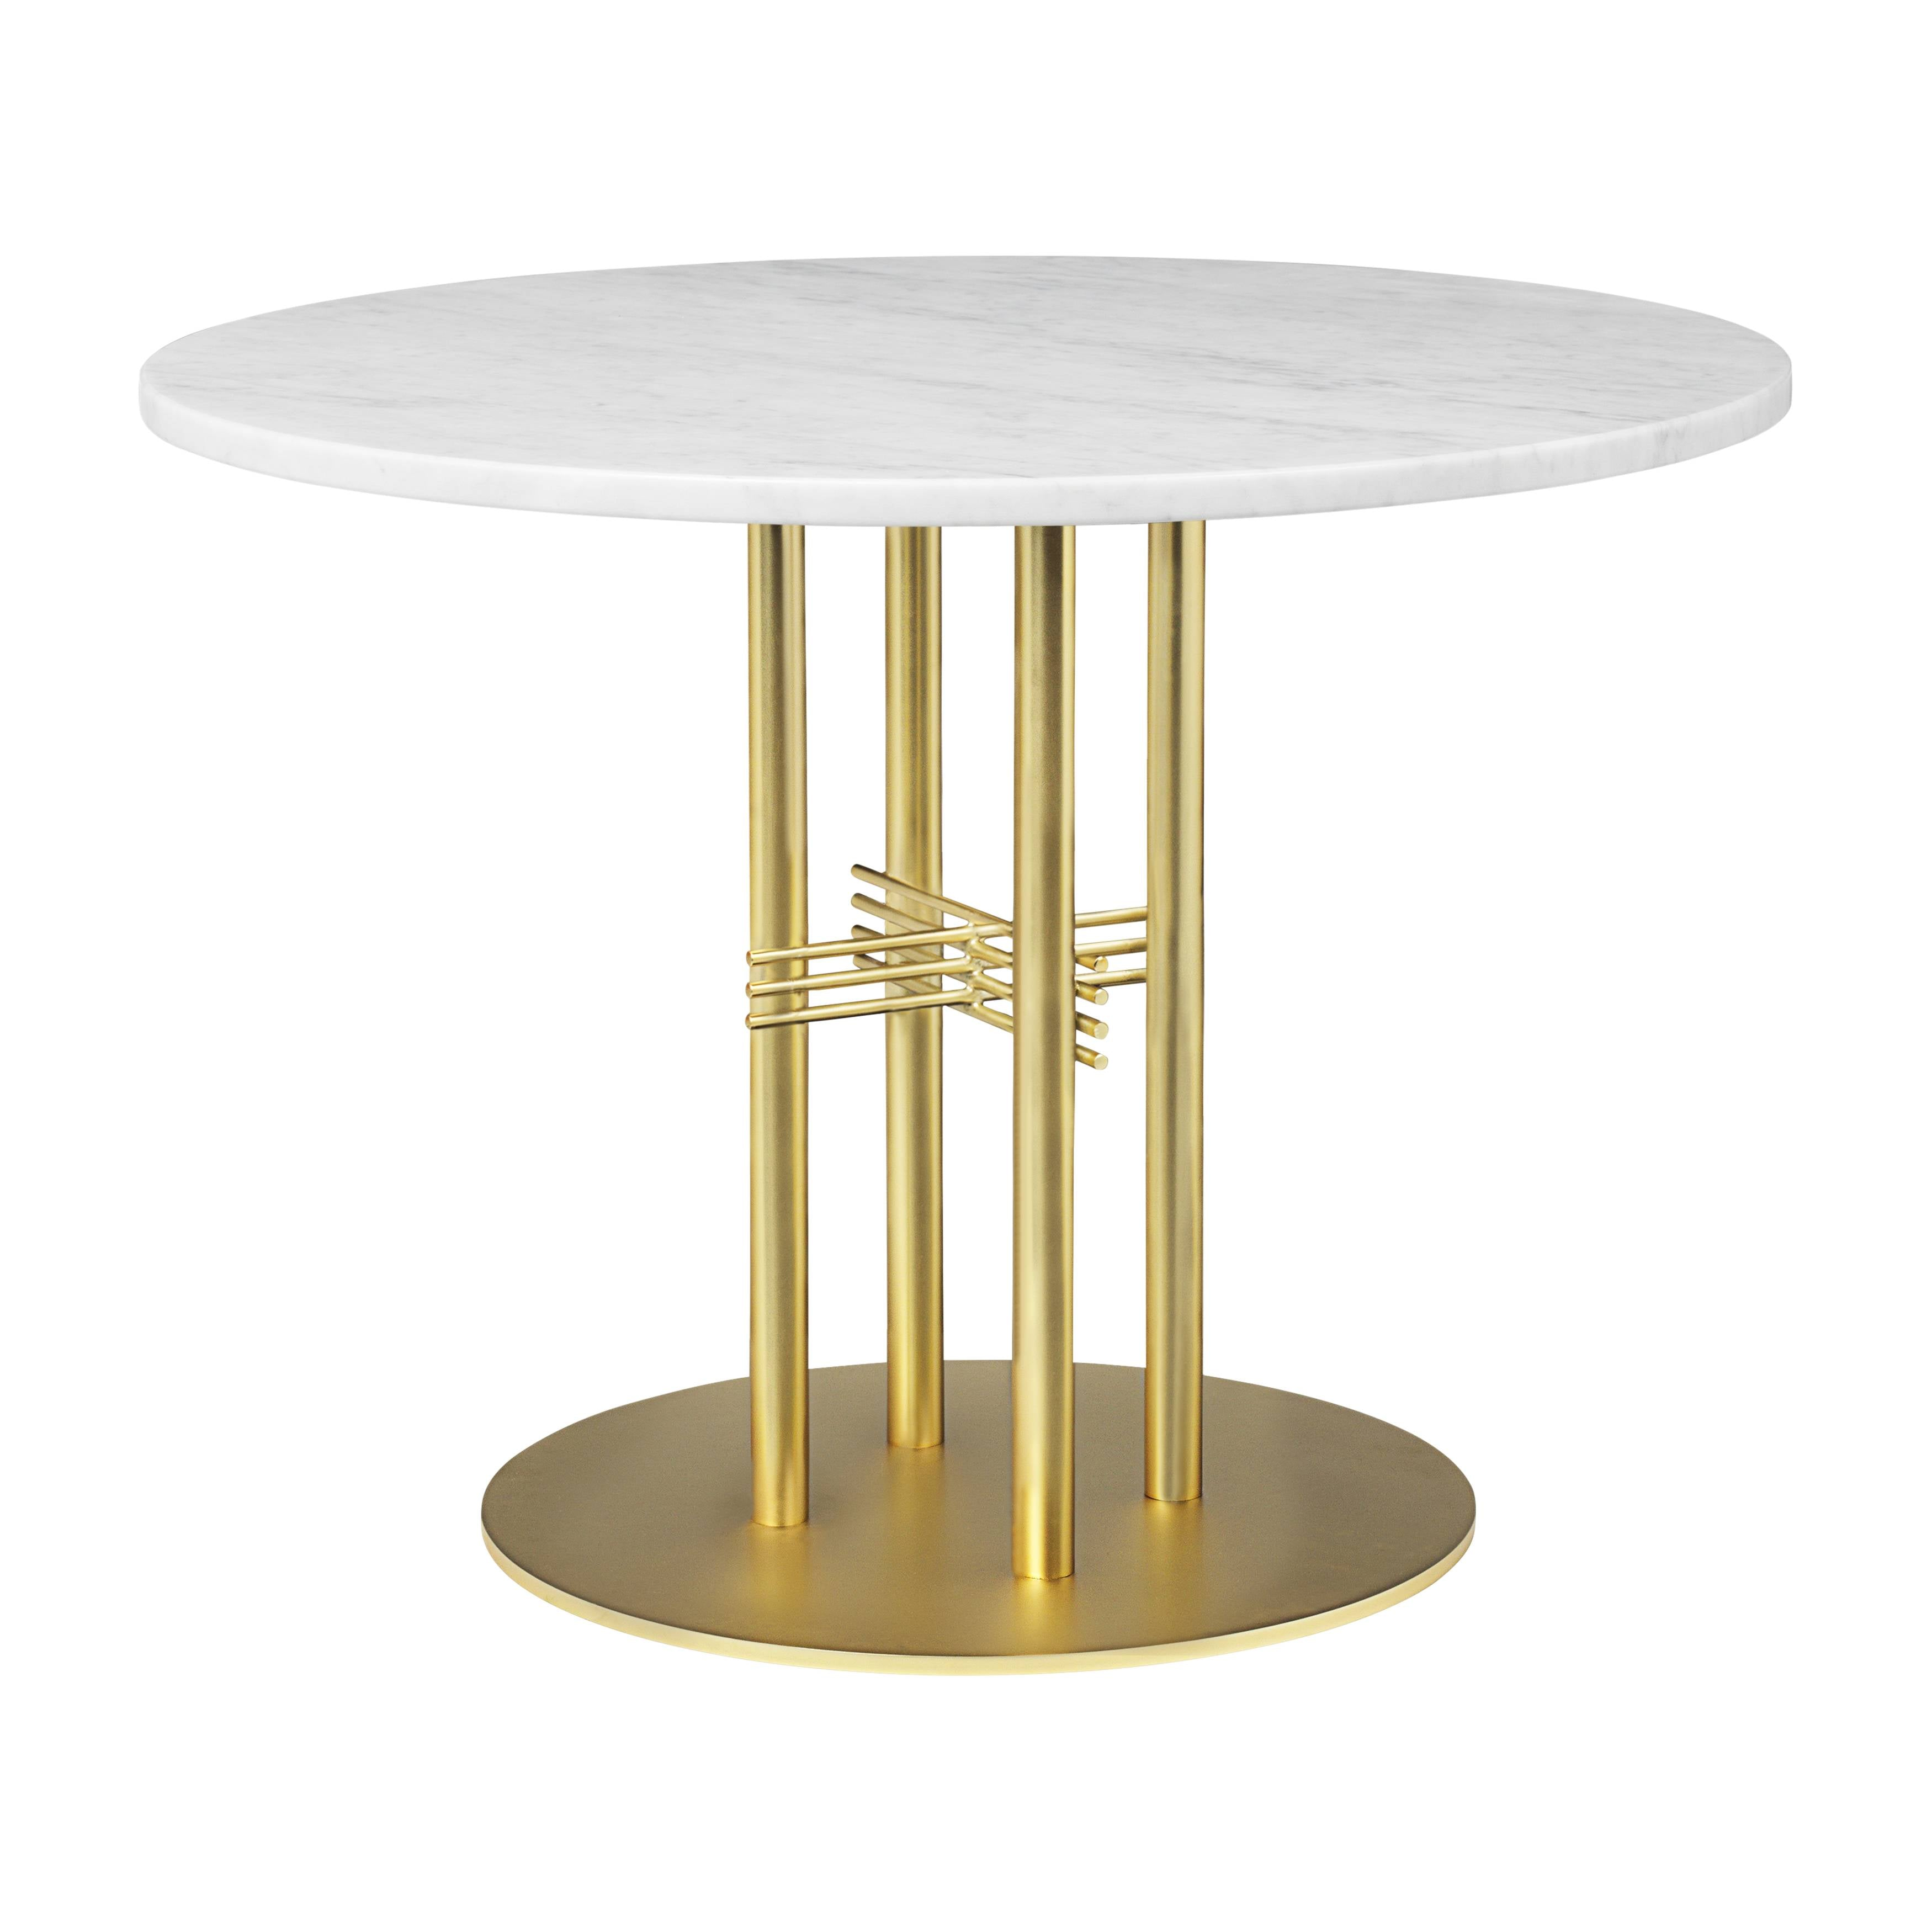 TS Column Lounge Table: Small + Brass Base + White Carrara Marble